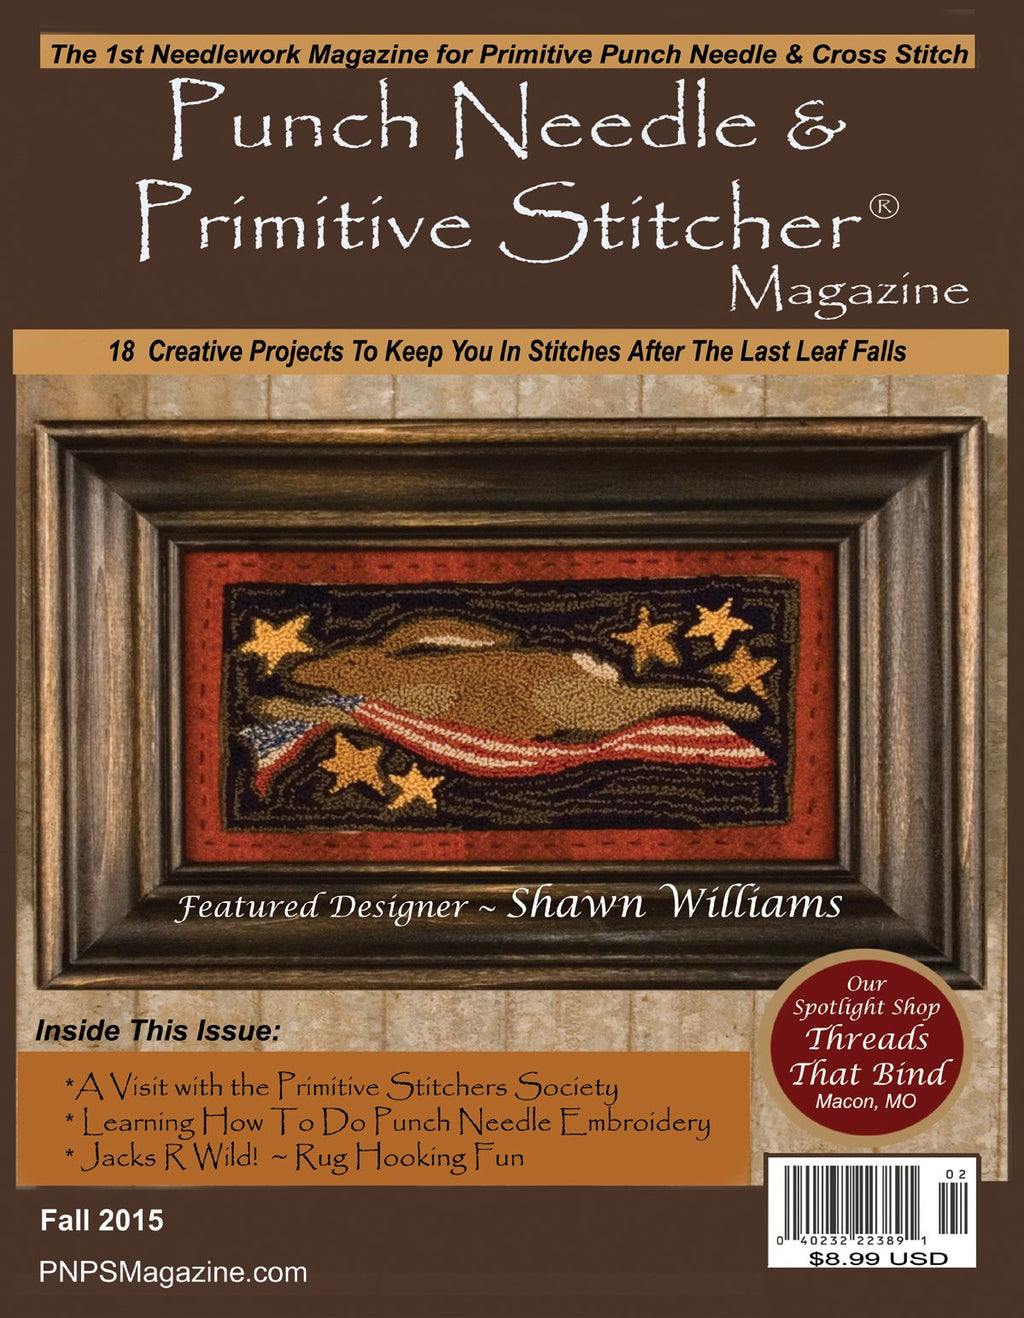 PUNCH NEEDLE & PRIMITIVE STITCHER Magazine - Single Issue Fall 2015